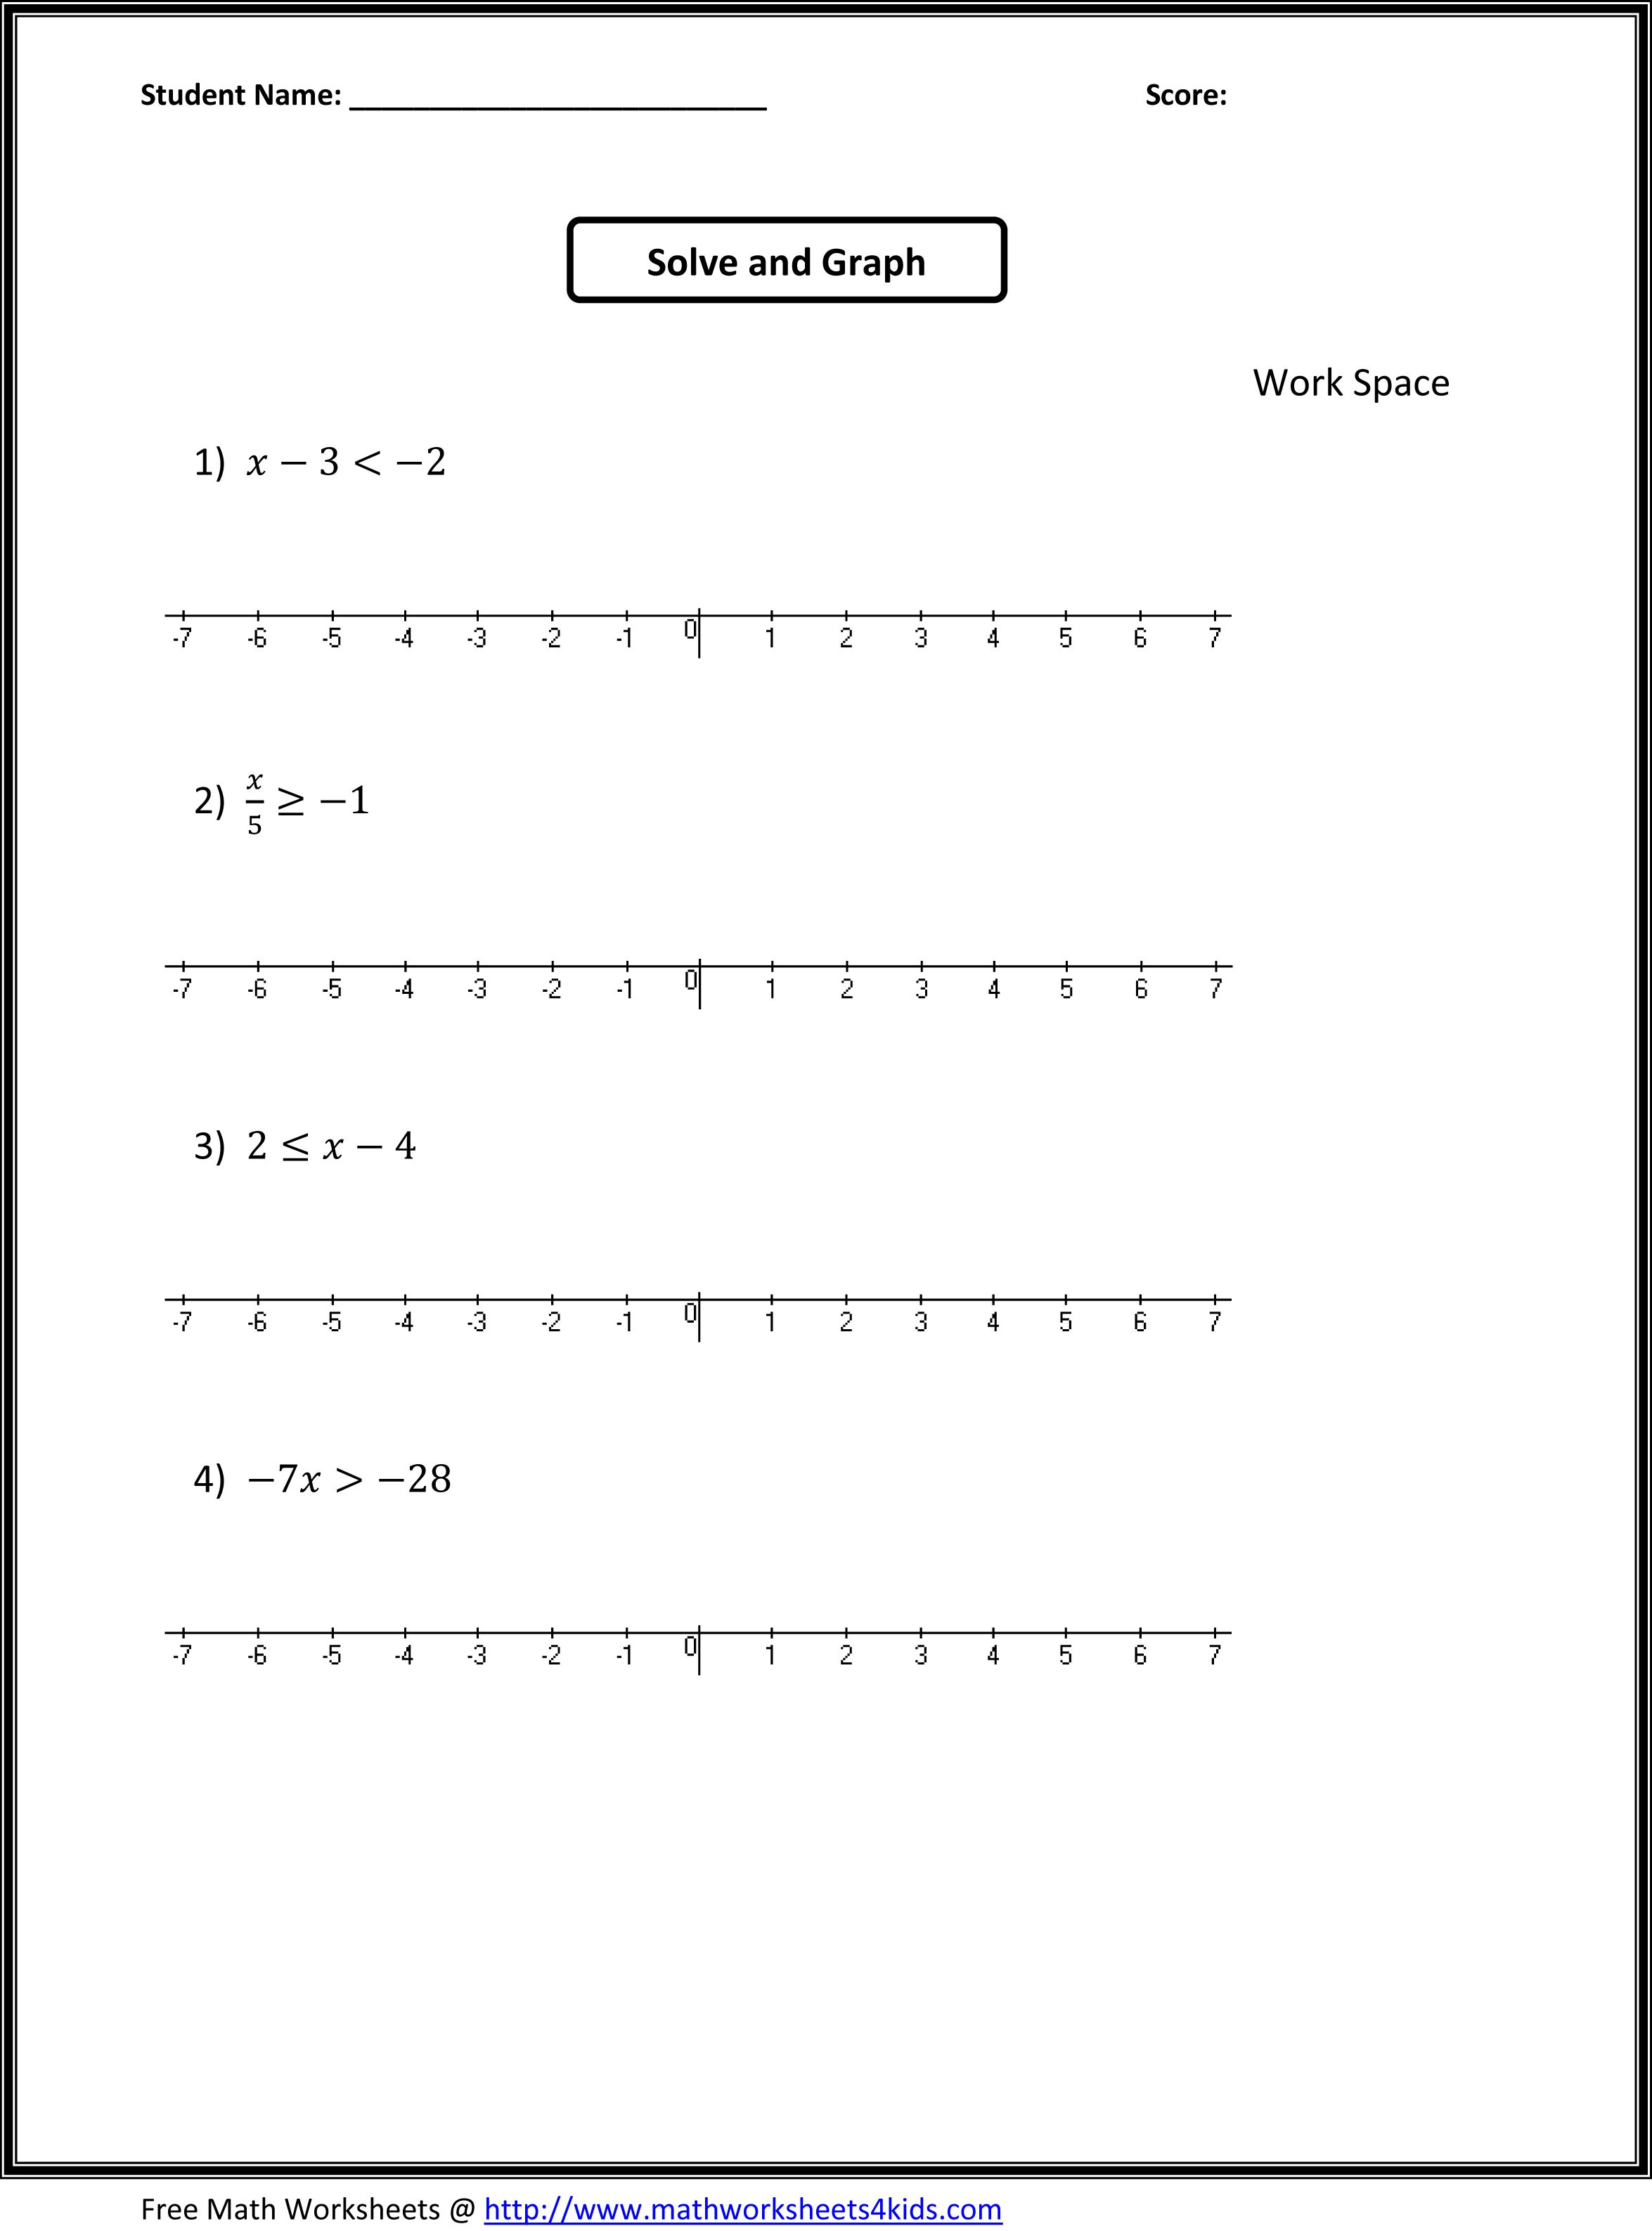 Printables 7th Grade Math Worksheets 7th grade math worksheets value absolute algebra worksheets